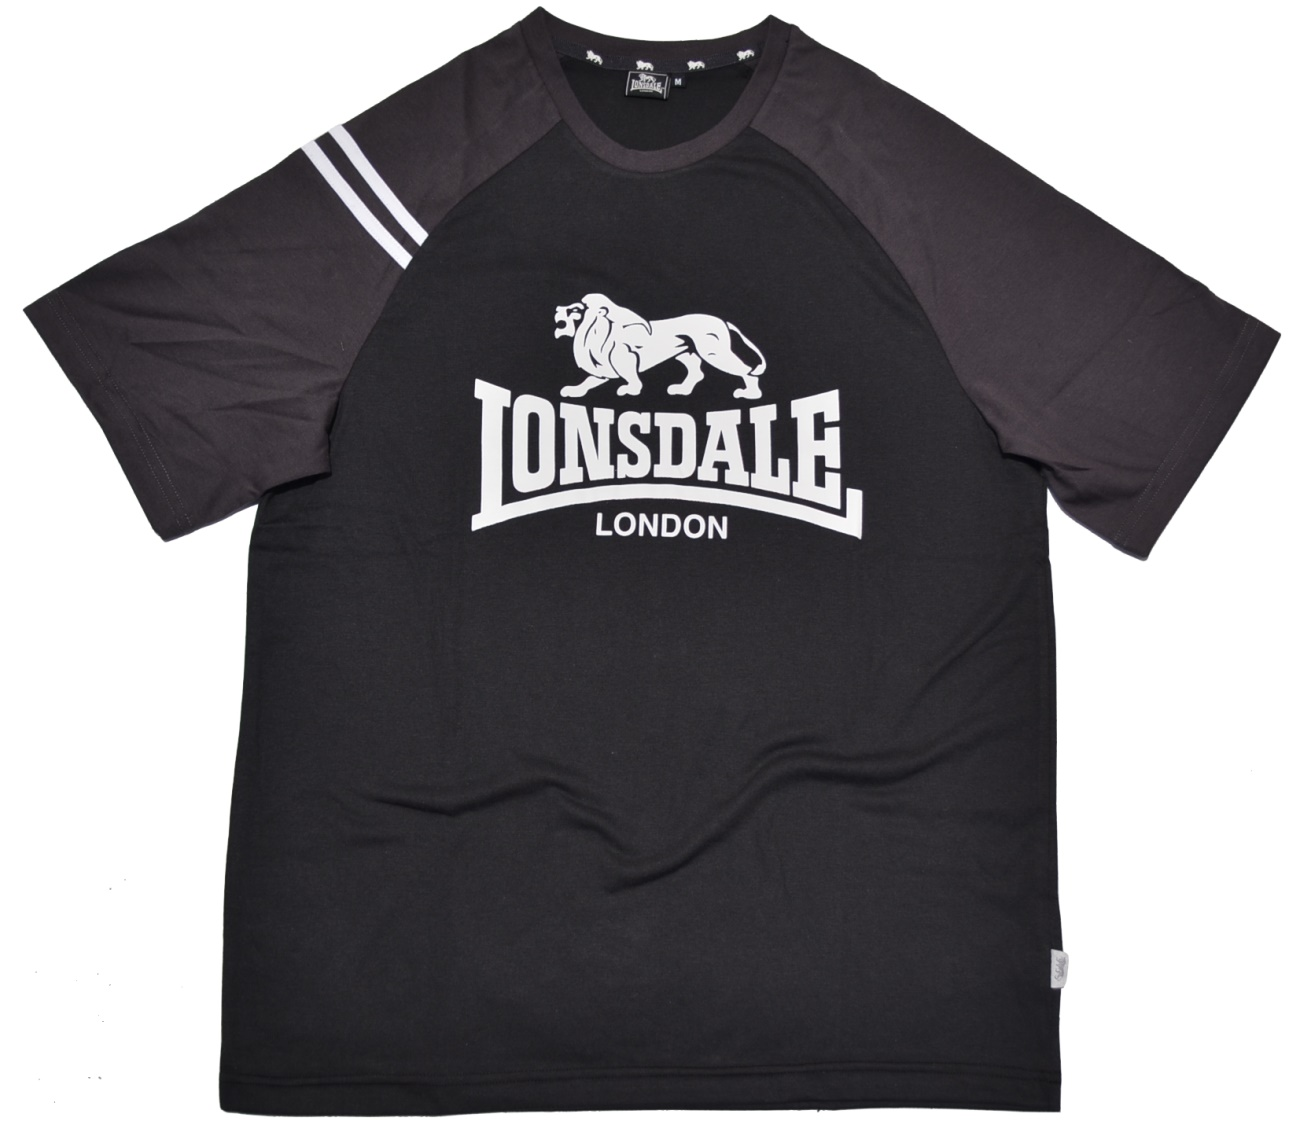 lonsdale london t shirt lion logo lonsdale t shirts details skinhead shop und versand. Black Bedroom Furniture Sets. Home Design Ideas